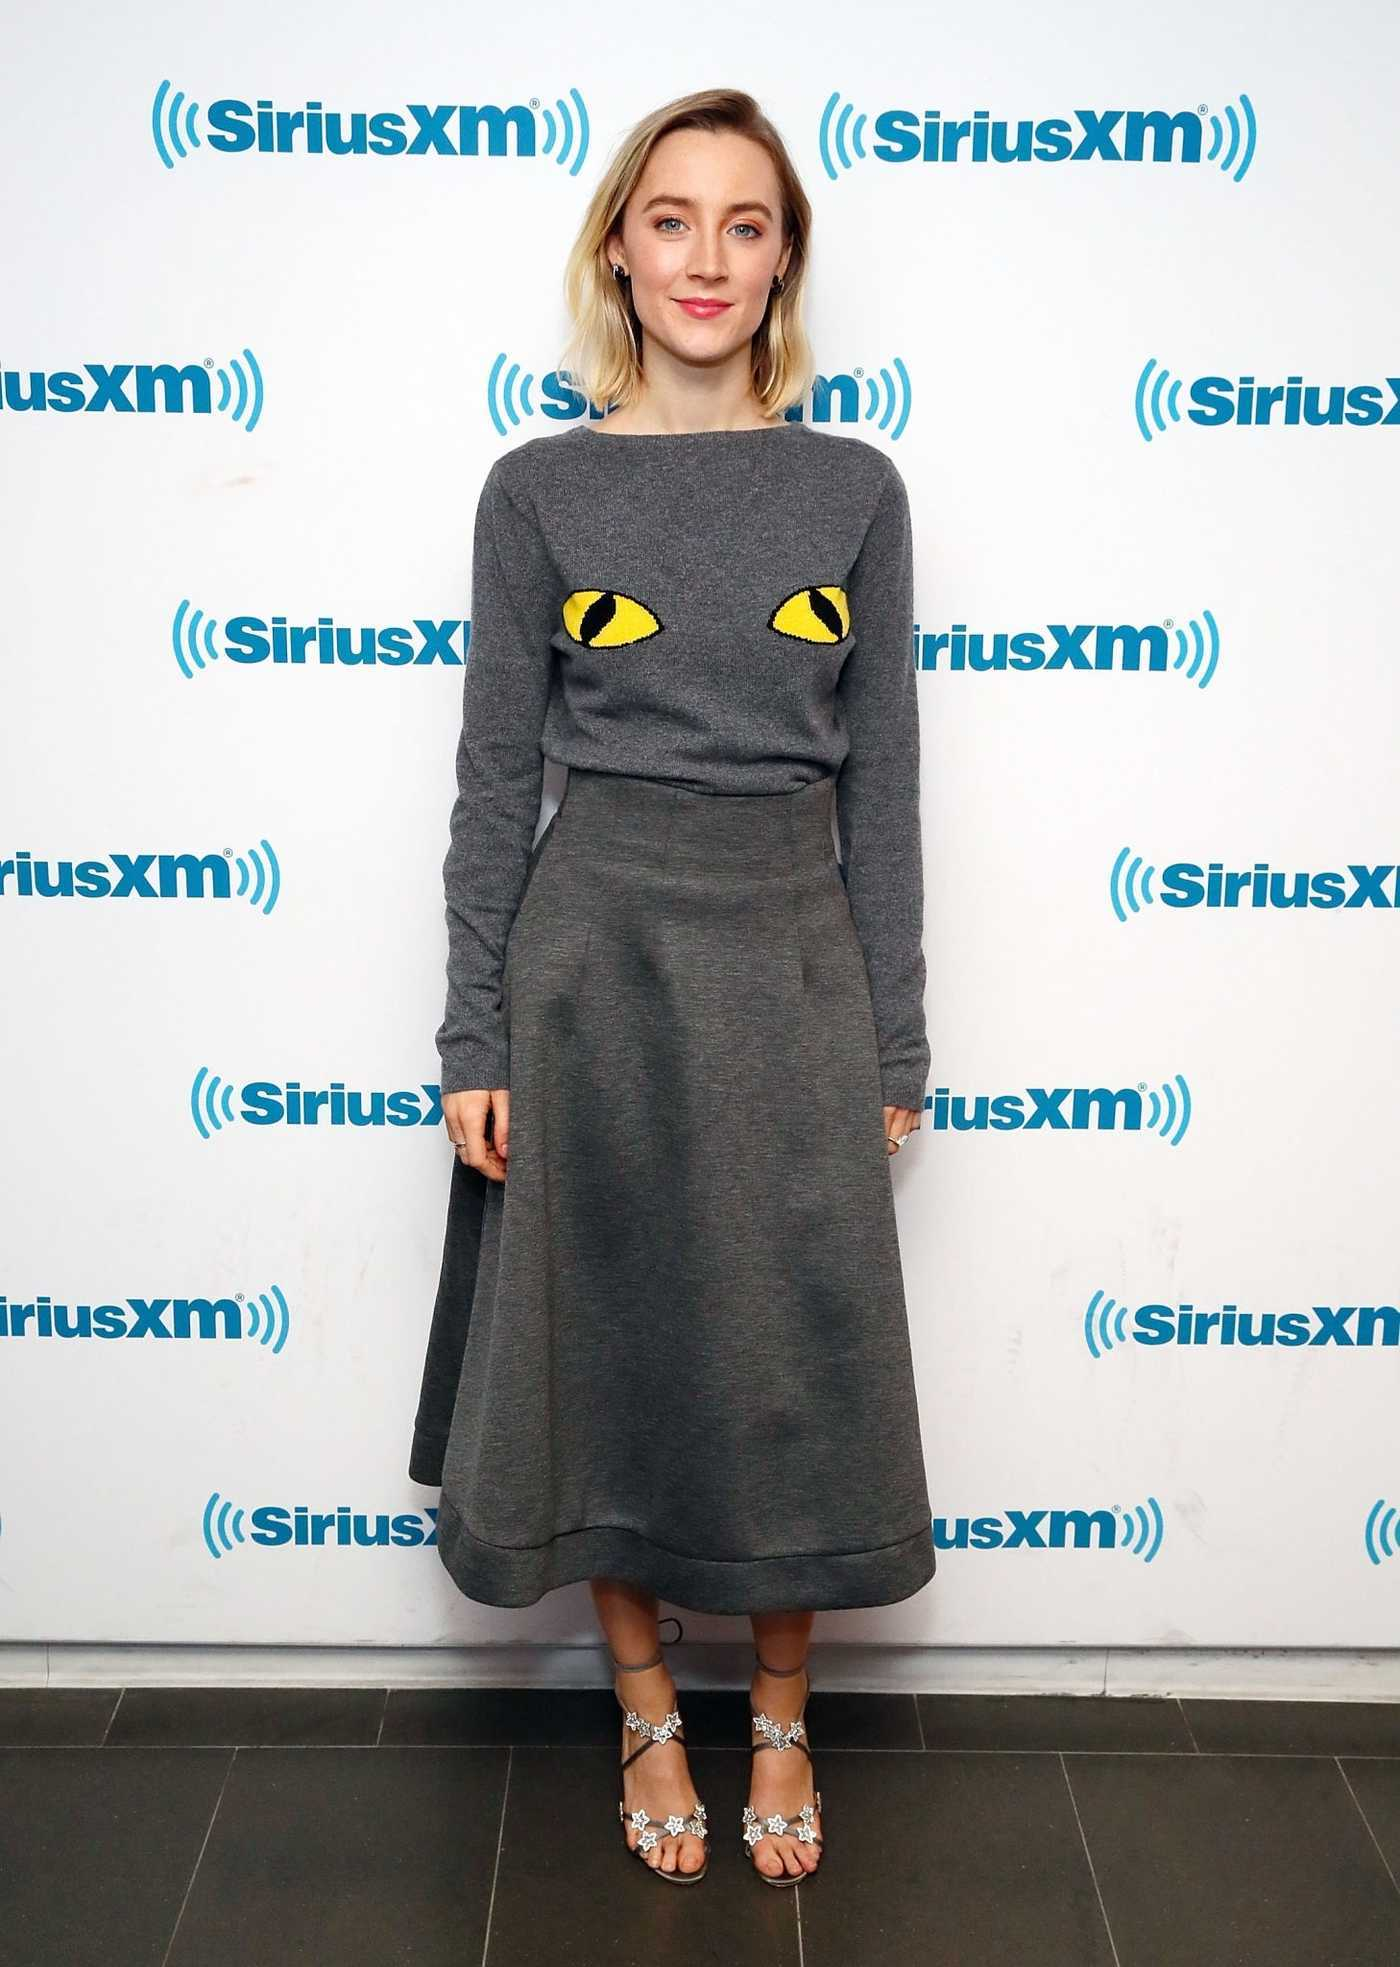 Saoirse Ronan Visits the SiriusXM Studios in New York City 12/17/2018